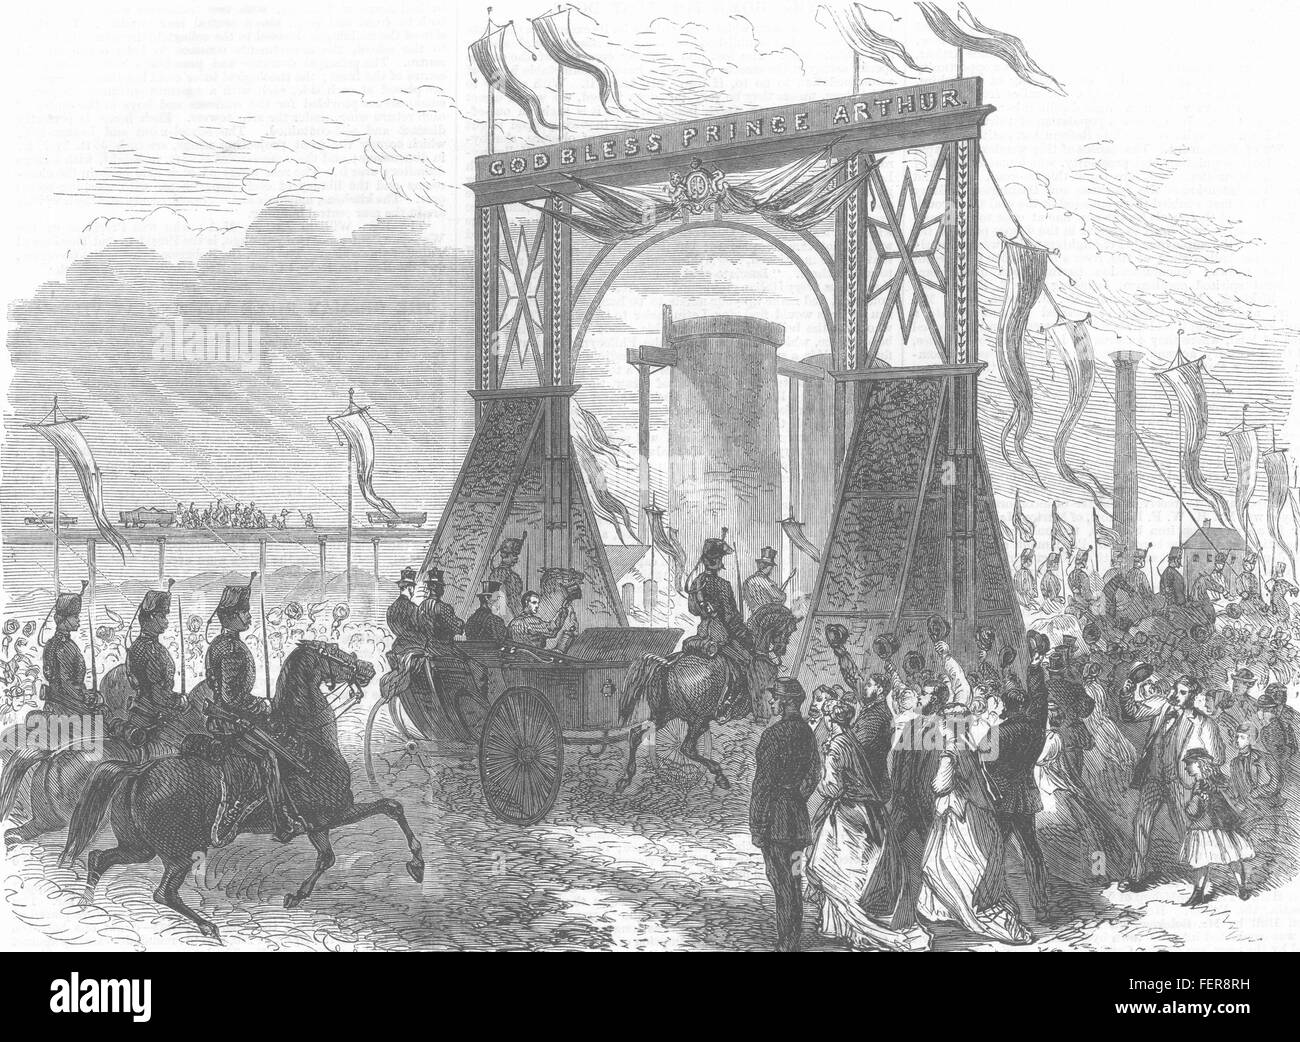 MIDDLESBROUGH Visit of Prince Arthur to Teeside Ironworks 1868. Illustrated London News - Stock Image